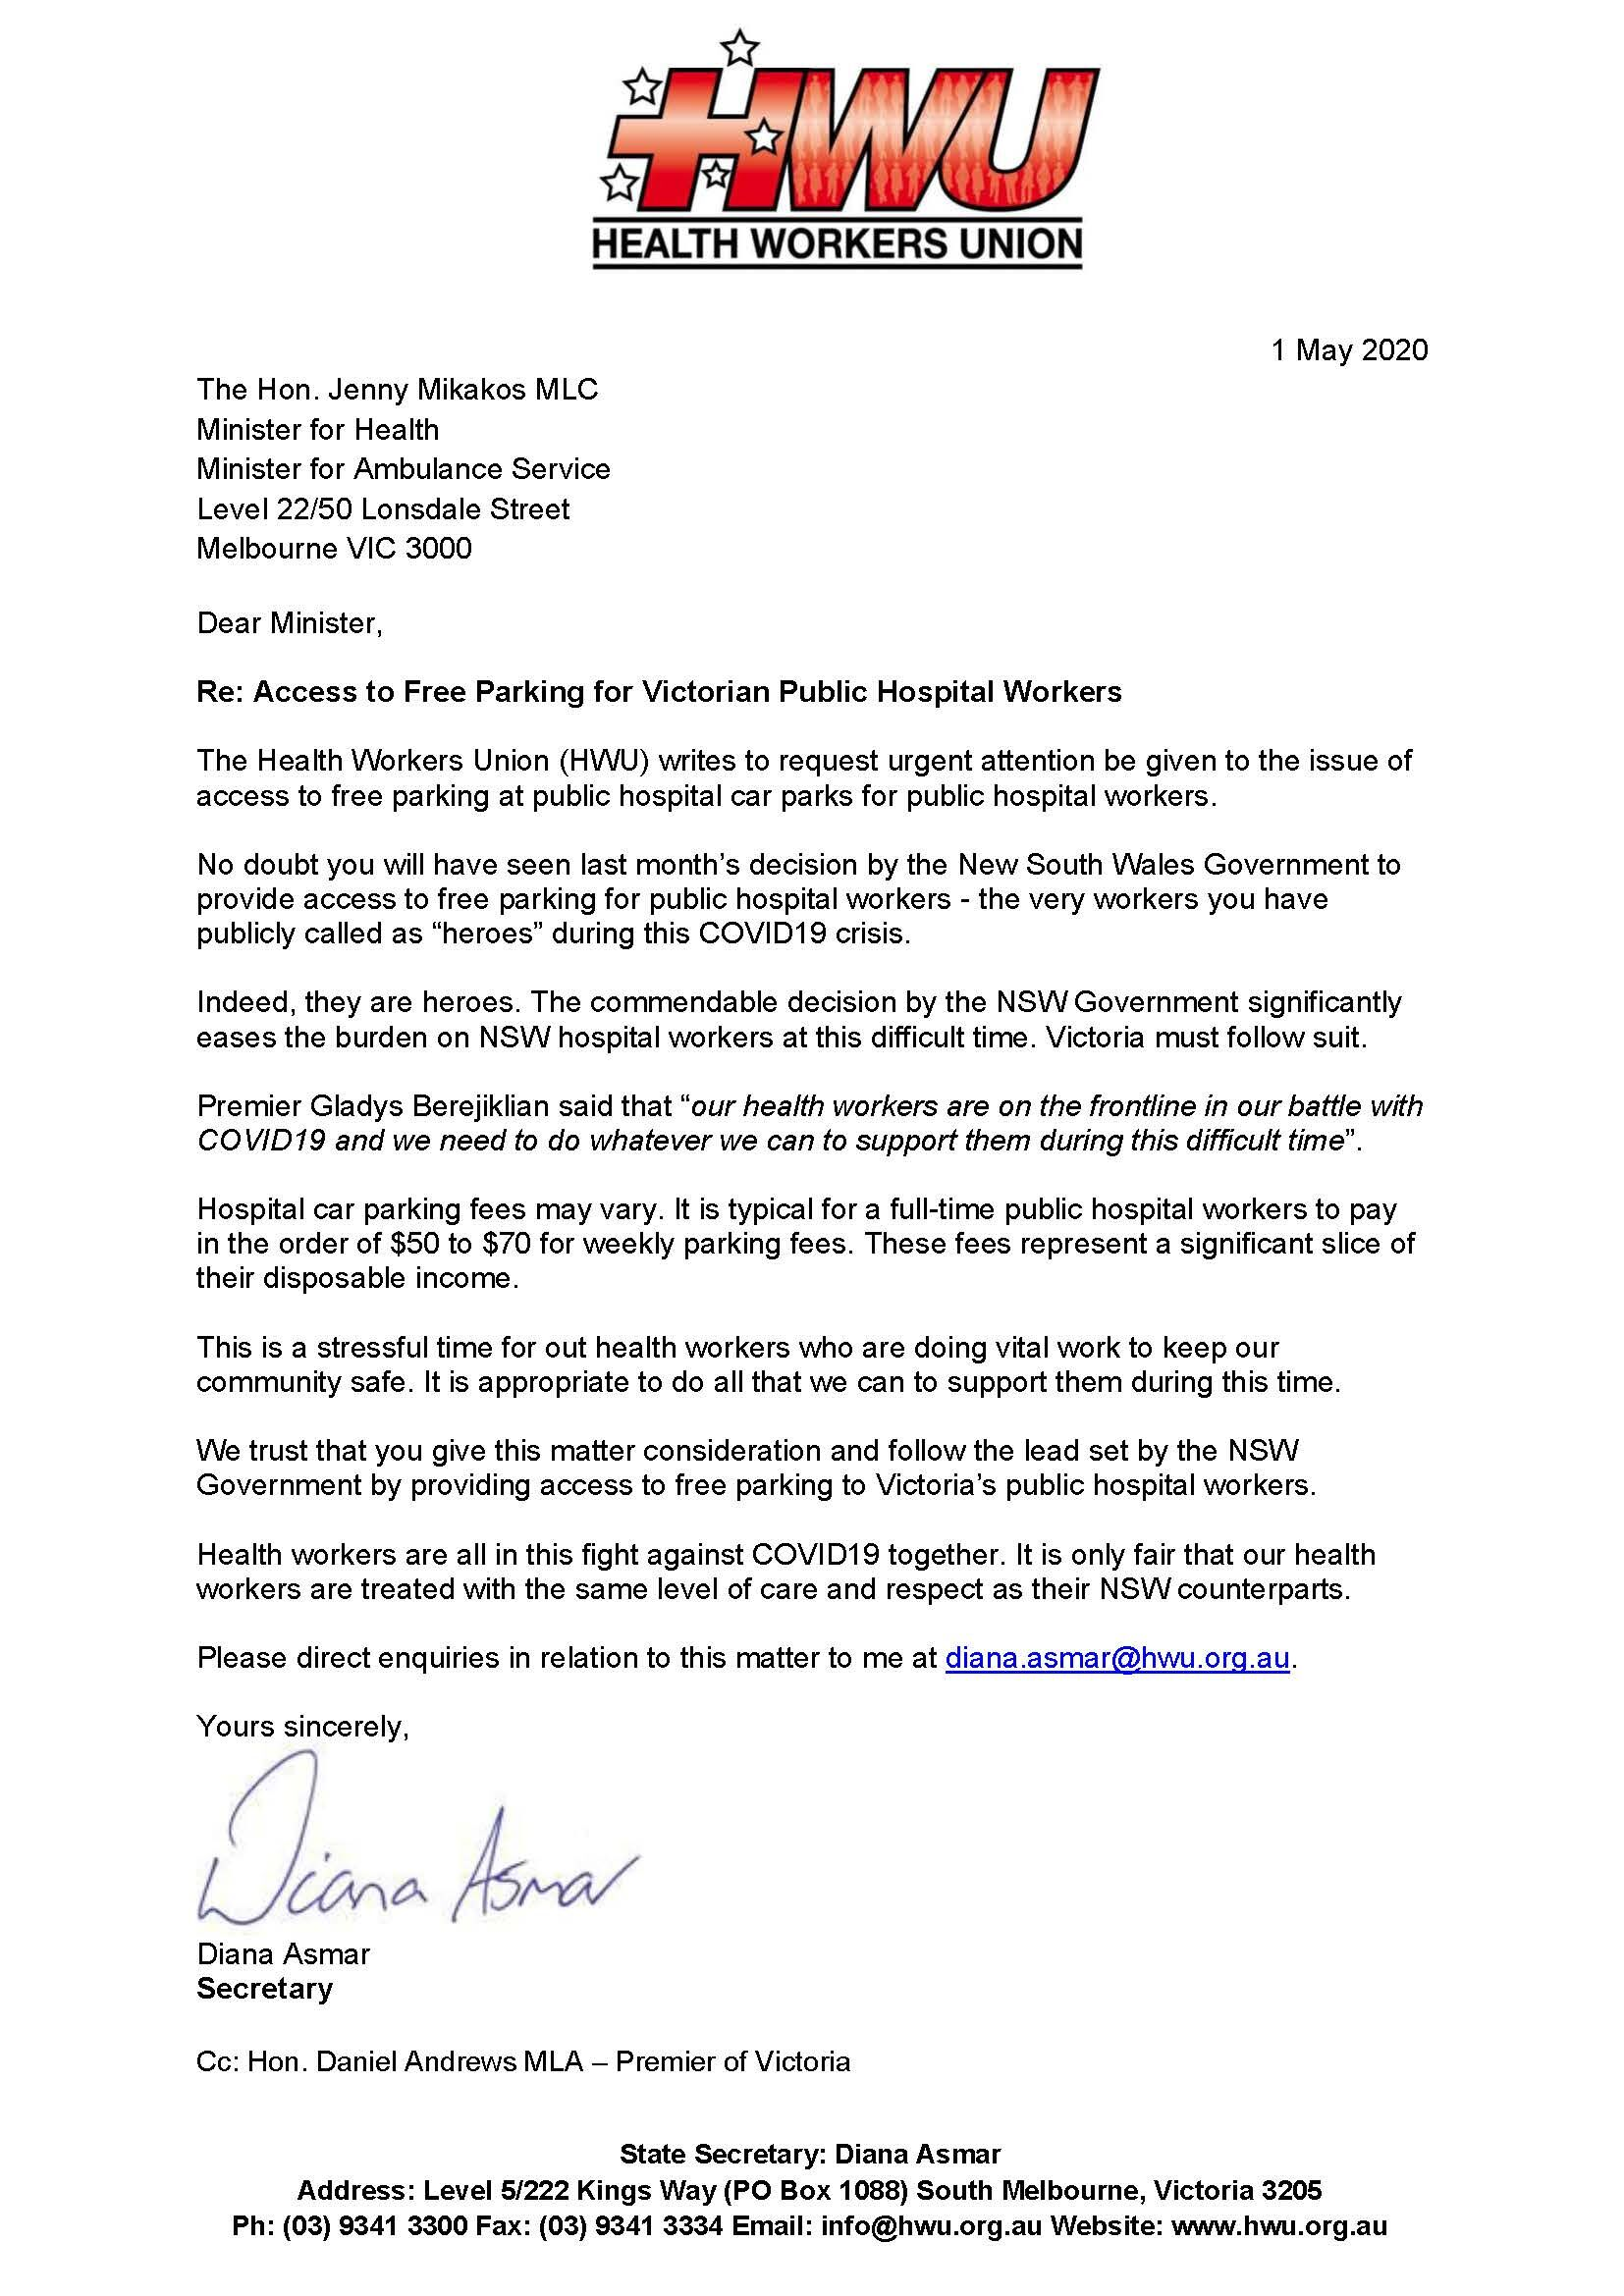 Free Parking Letter to Minister